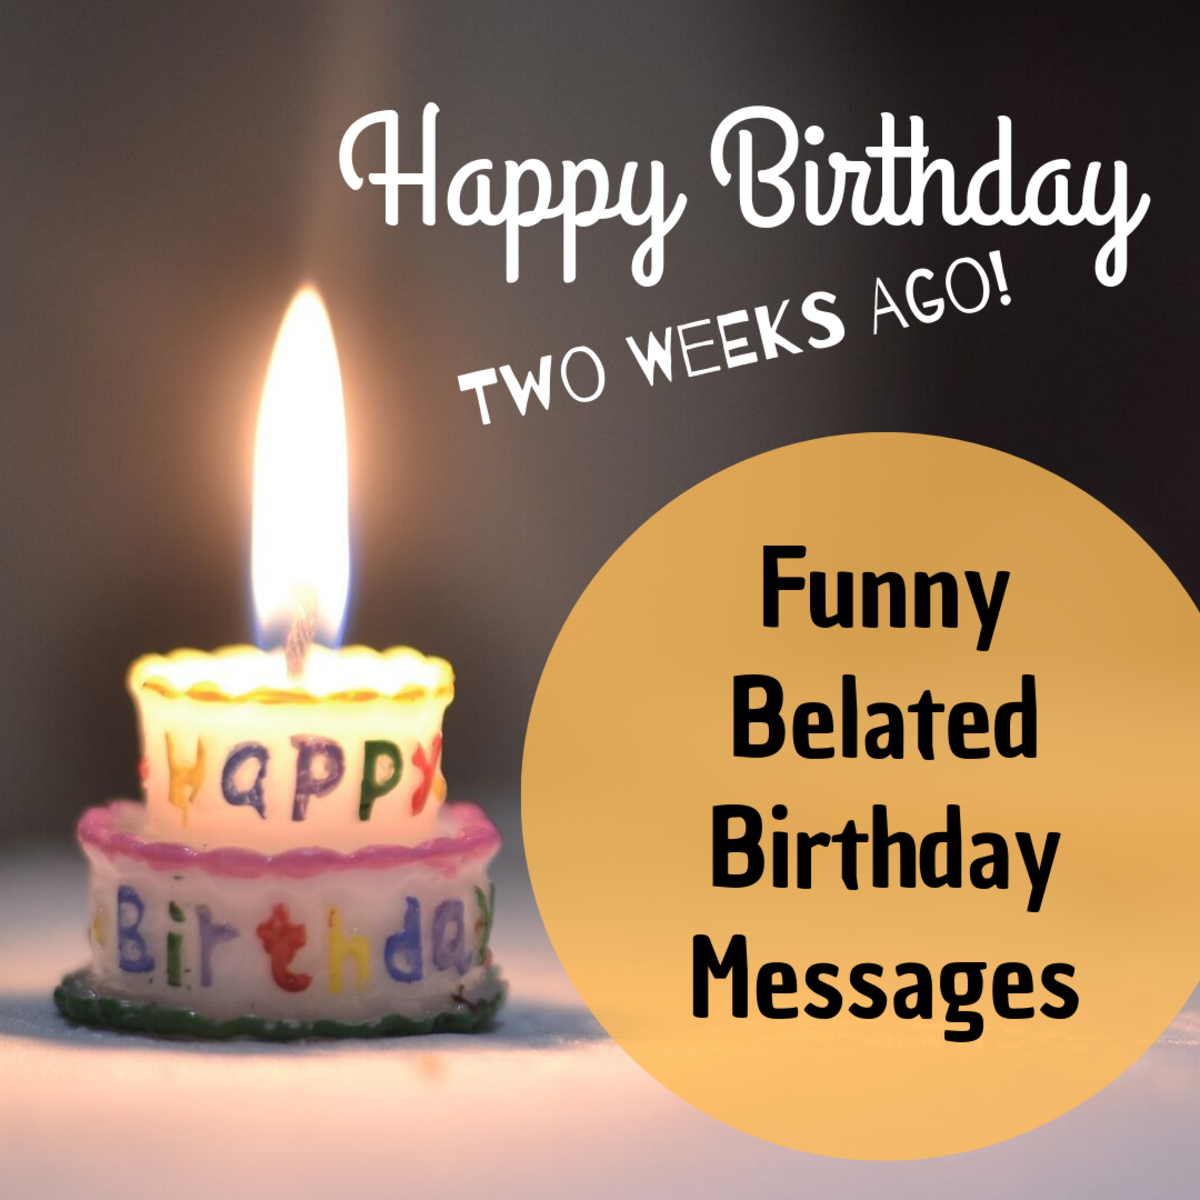 Funny Belated Happy Birthday Wishes Late Messages And Greetings Holidappy Celebrations